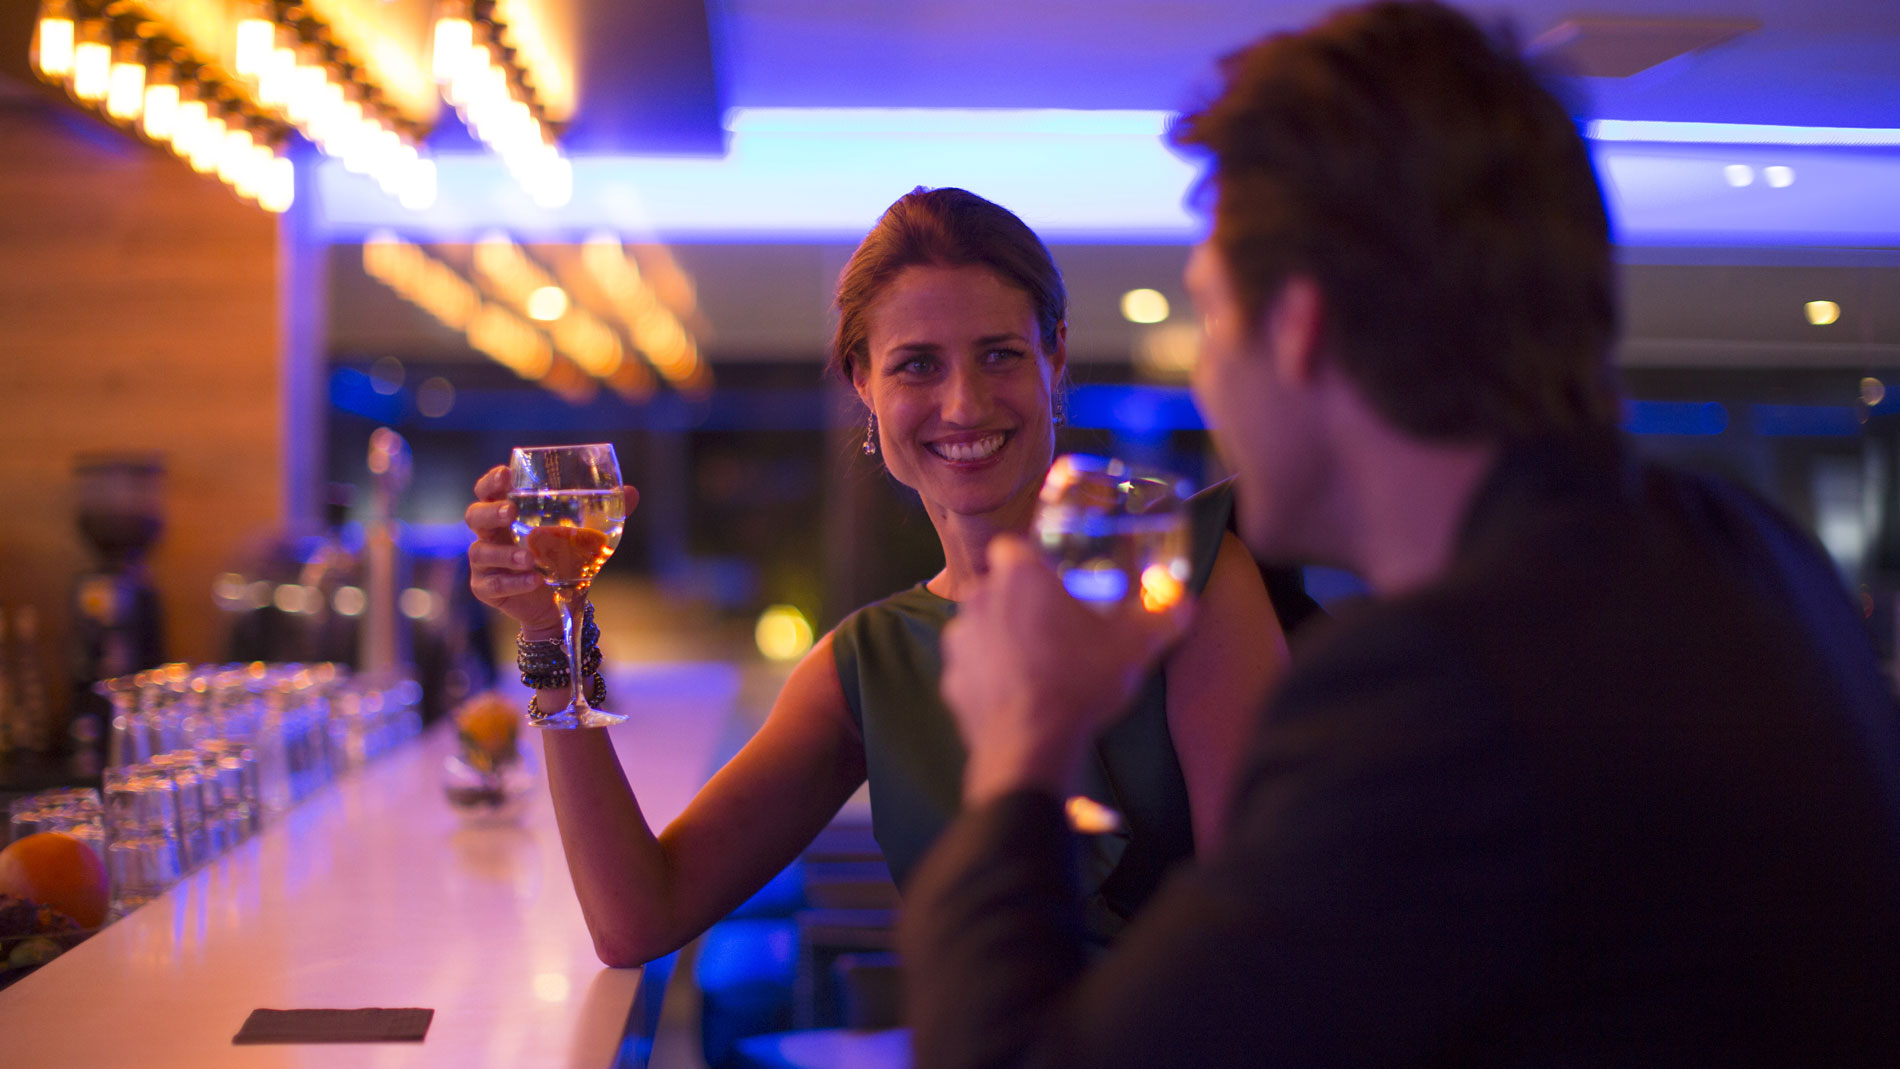 6 Dating Tips from Bartenders, Based on the Best and Worst Dates They've Witnessed